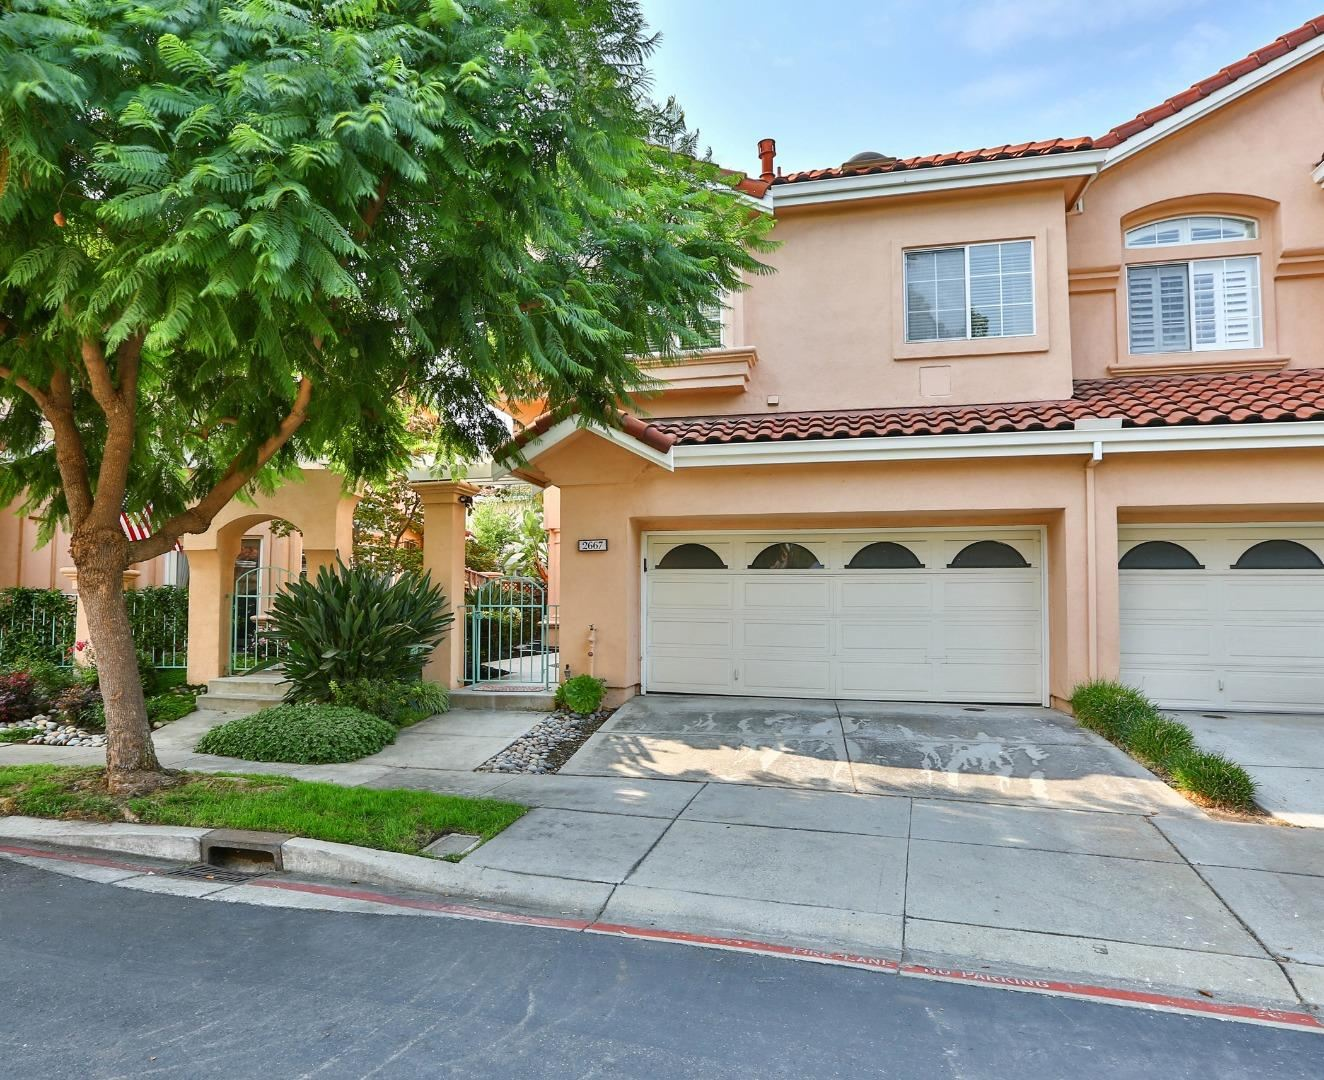 Photo for 2667 Pescara CT, CAMPBELL, CA 95008 (MLS # ML81815046)